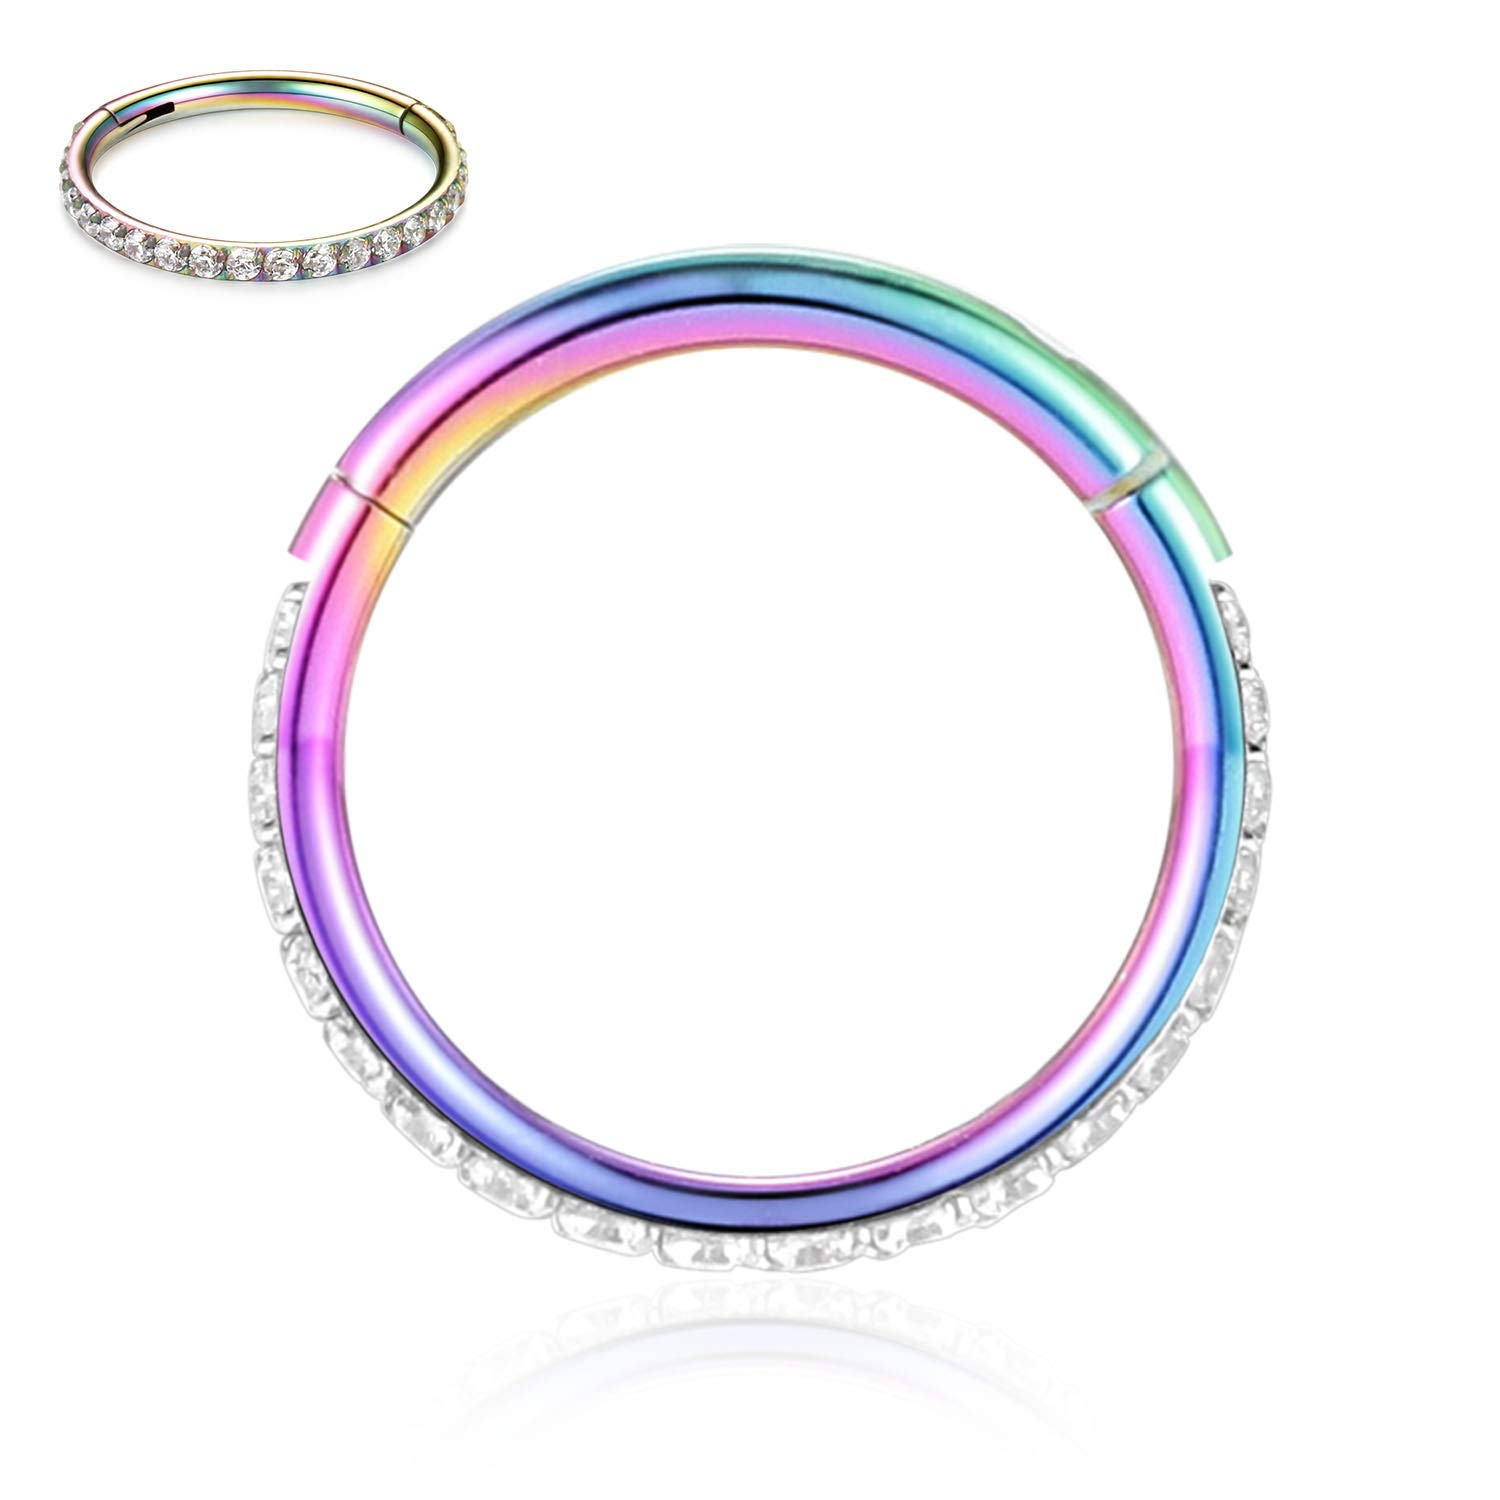 FUNLMO 18G 16G 14G CZ Opal Cartilage Earring Hoop 316L Surgical Steel Septum Nose Rings Daith Helix Tragus Piercing Jewelry